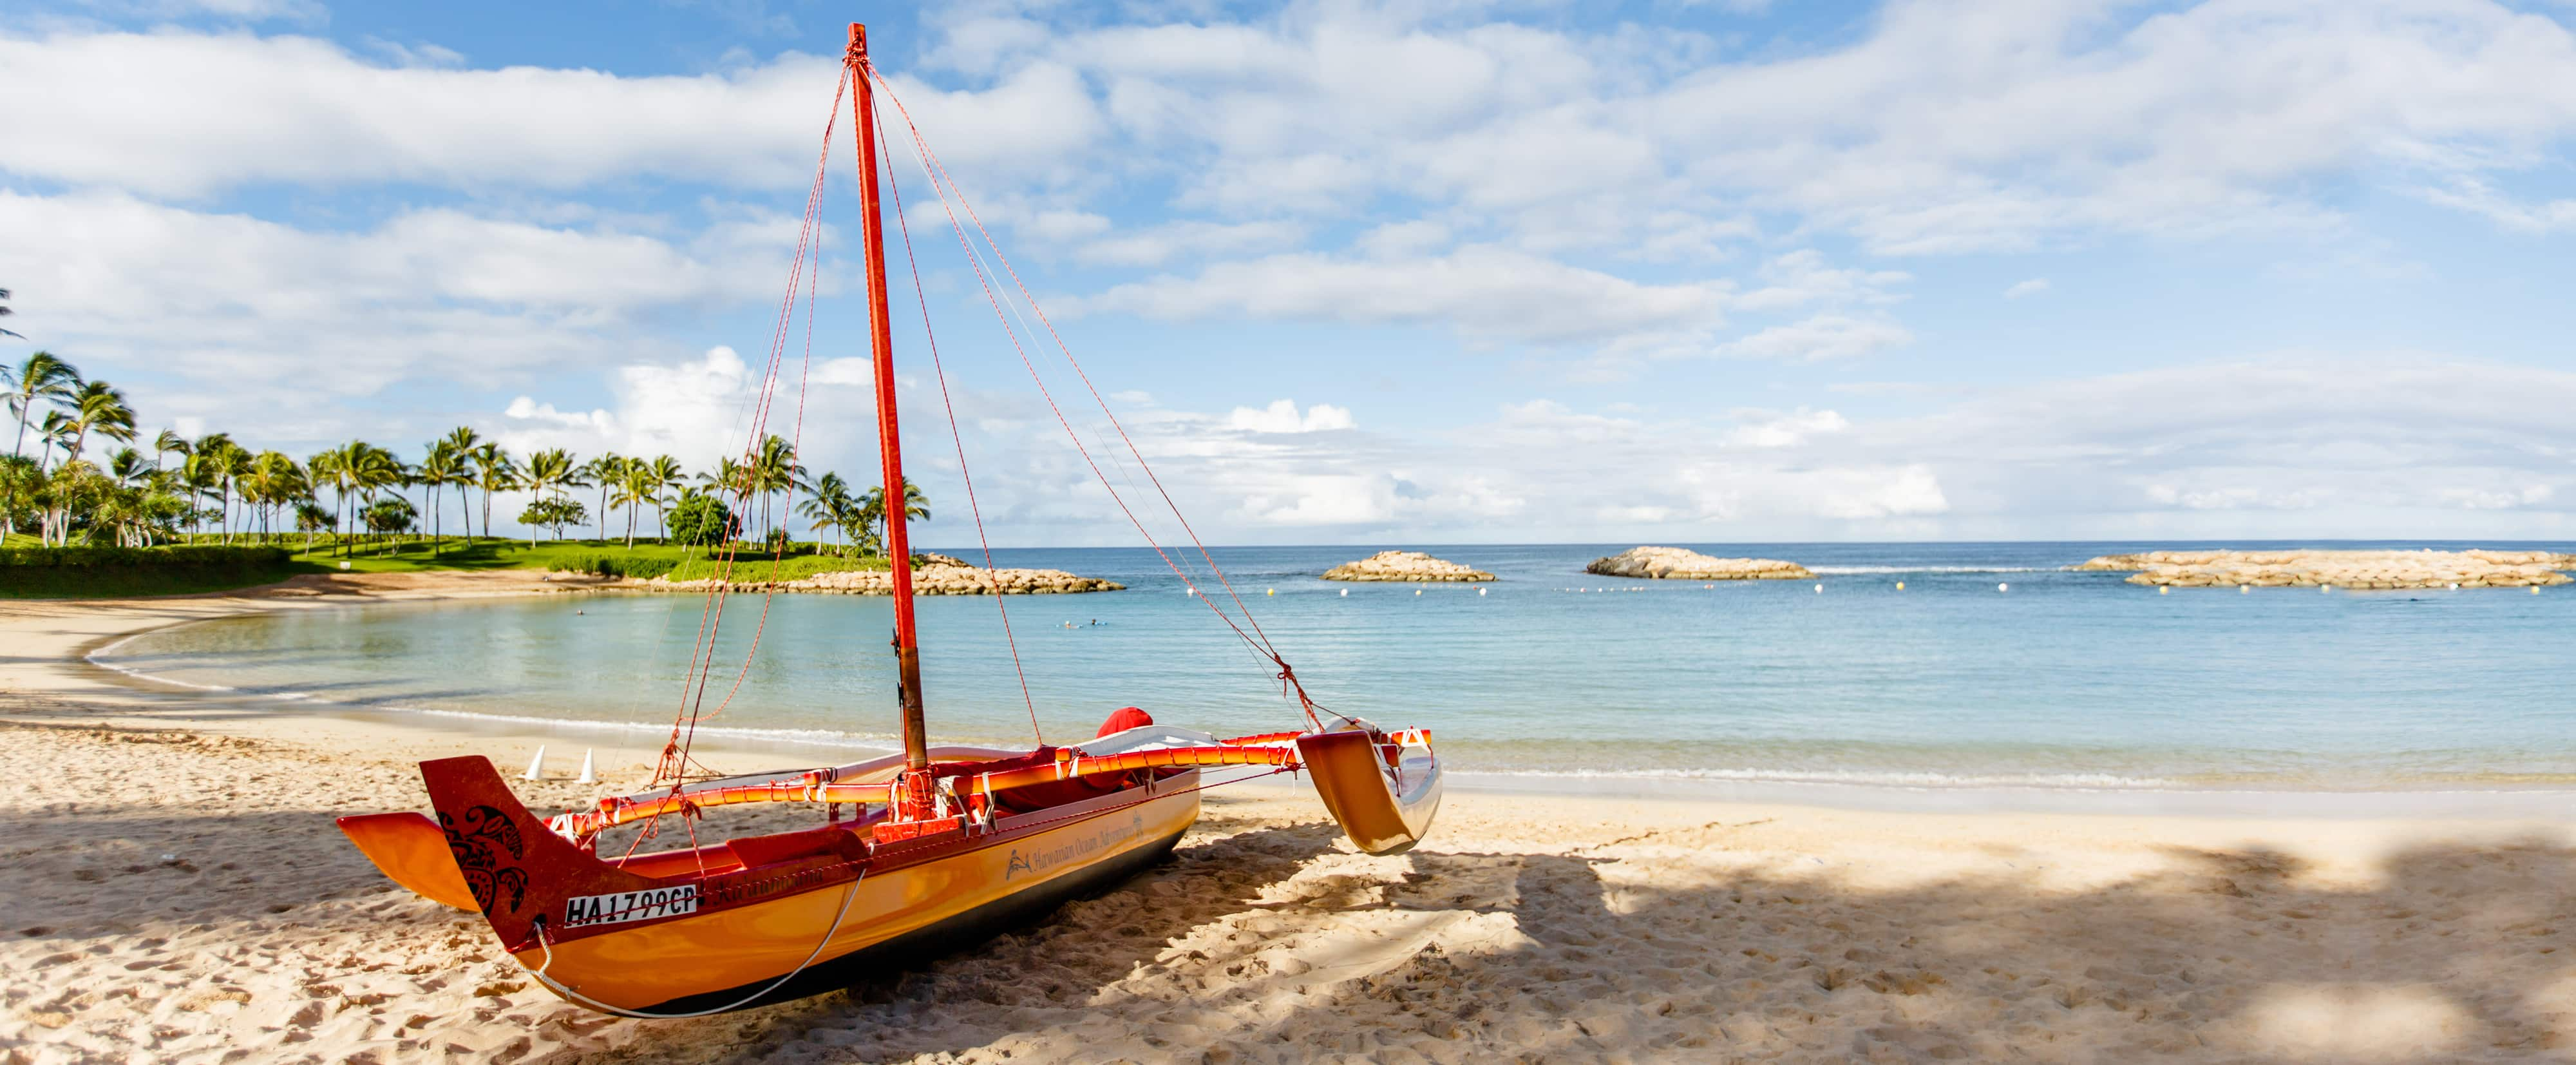 A Hawaiian sailing canoe on a sandy tropical beach, near the water's edge